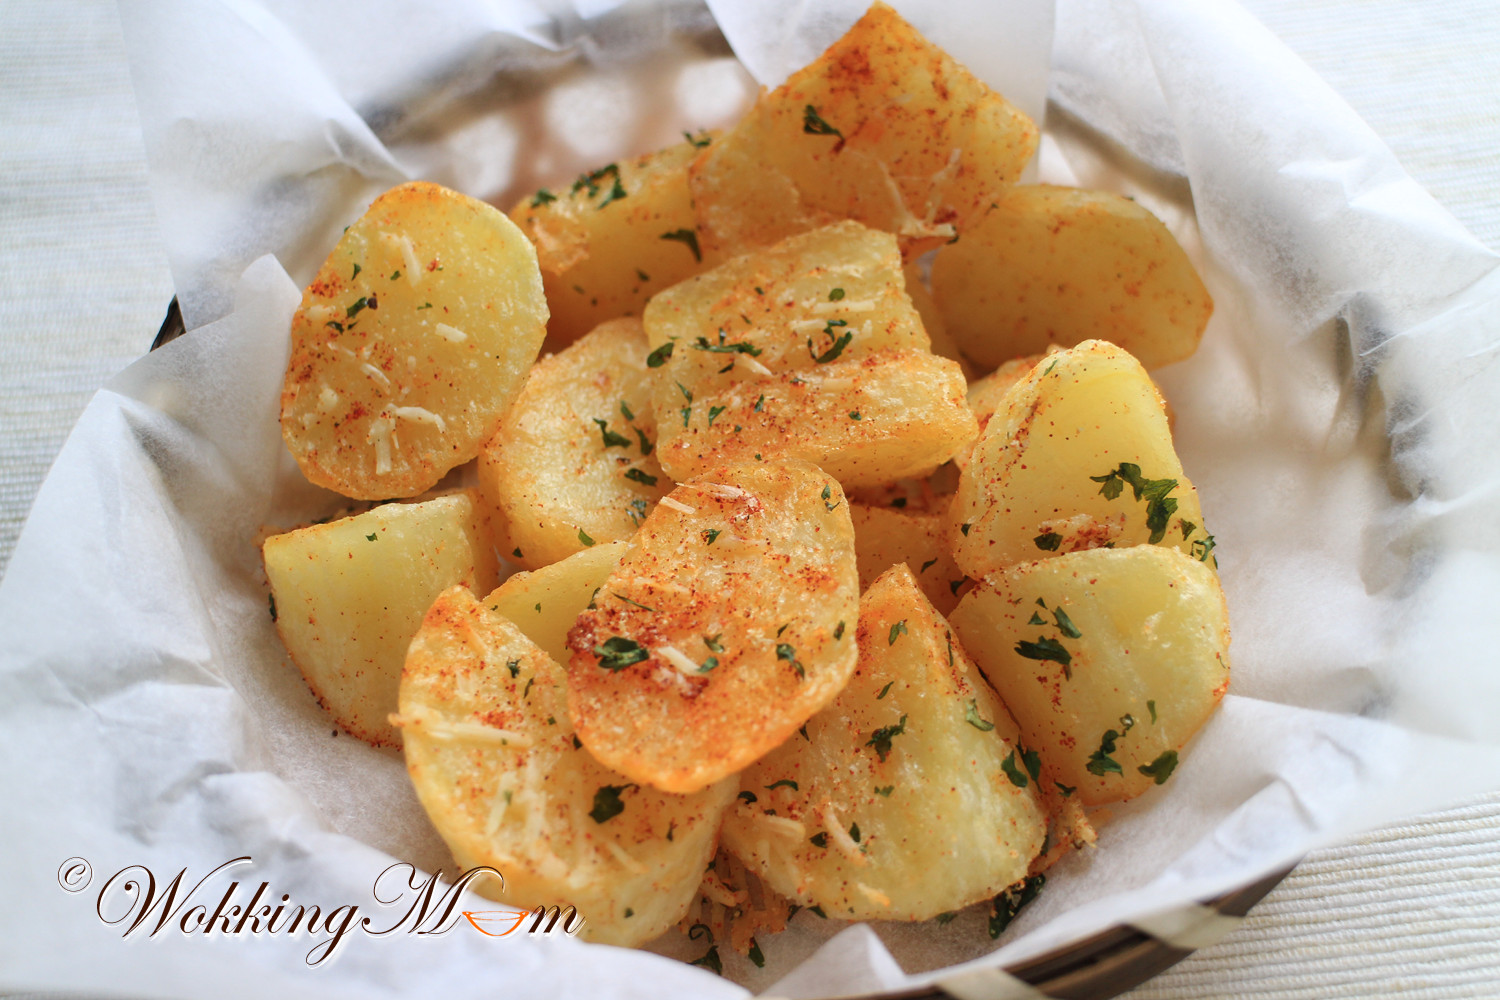 Fried Potato Recipes  Let s Wokking Fried Potato Wedges with Paprika and